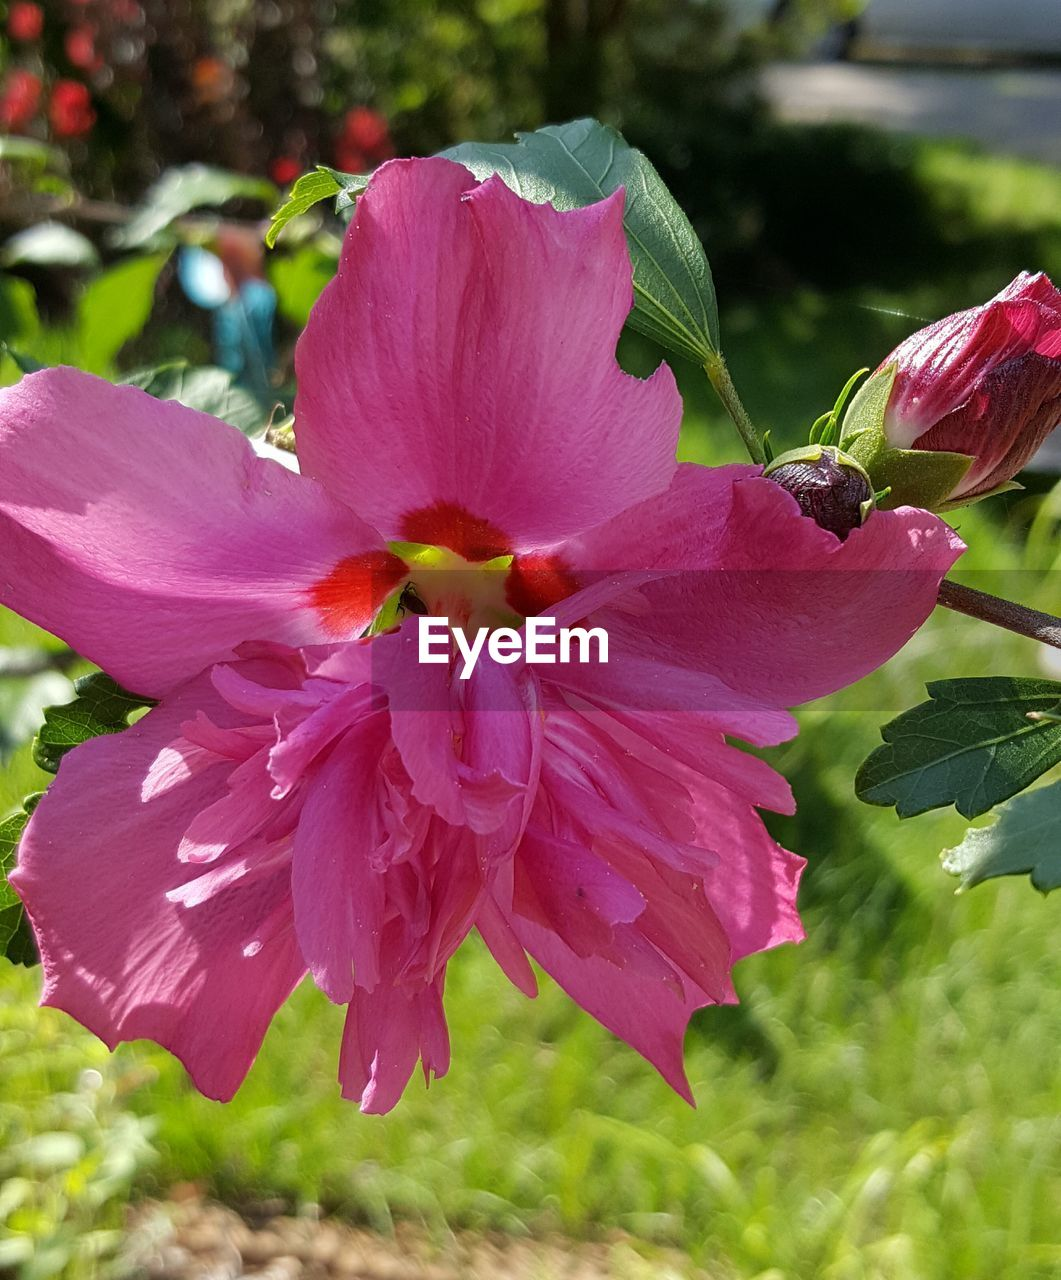 flower, flowering plant, petal, beauty in nature, fragility, vulnerability, plant, freshness, pink color, inflorescence, close-up, flower head, growth, nature, focus on foreground, day, no people, botany, pollen, outdoors